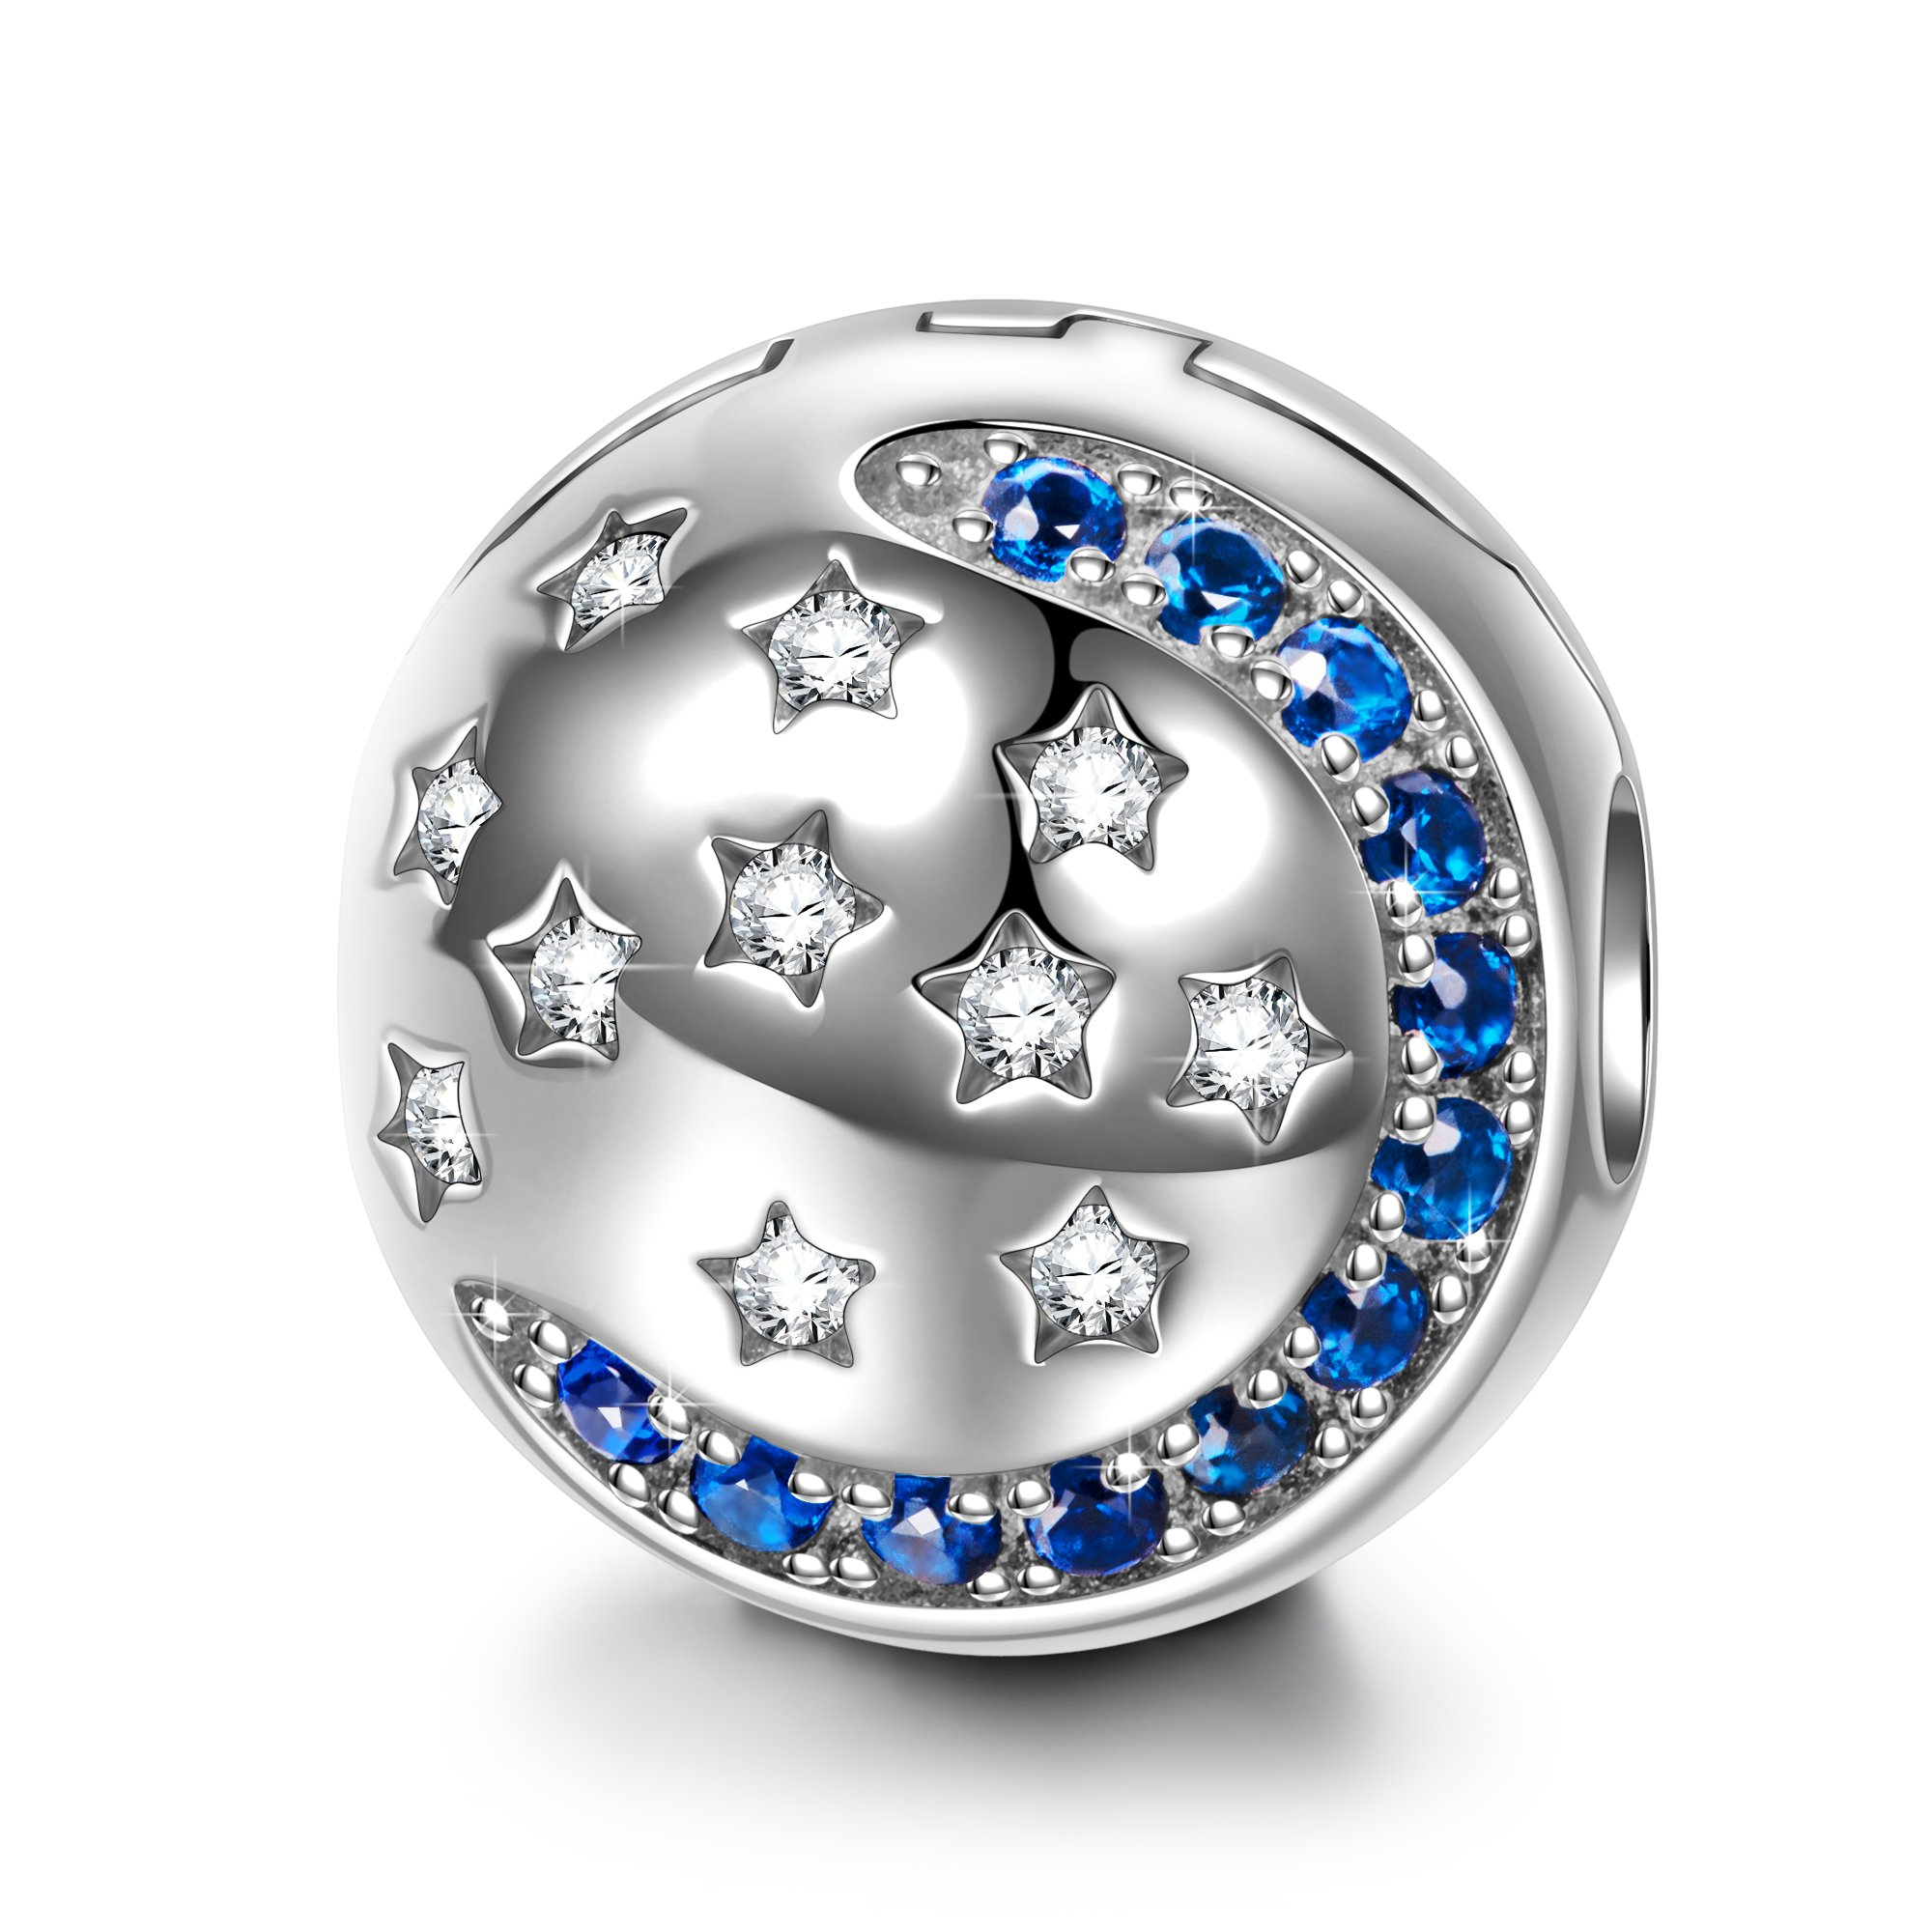 NinaQueen Starry Sky 925 Sterling Silver Moon and Star Stopper Clasp Bead Charms for Pandöra Bracelets Necklace Jewelry Gifts For Woman Birthday Gifts For Her Anniversary Gifts For Wife Mom Daughter